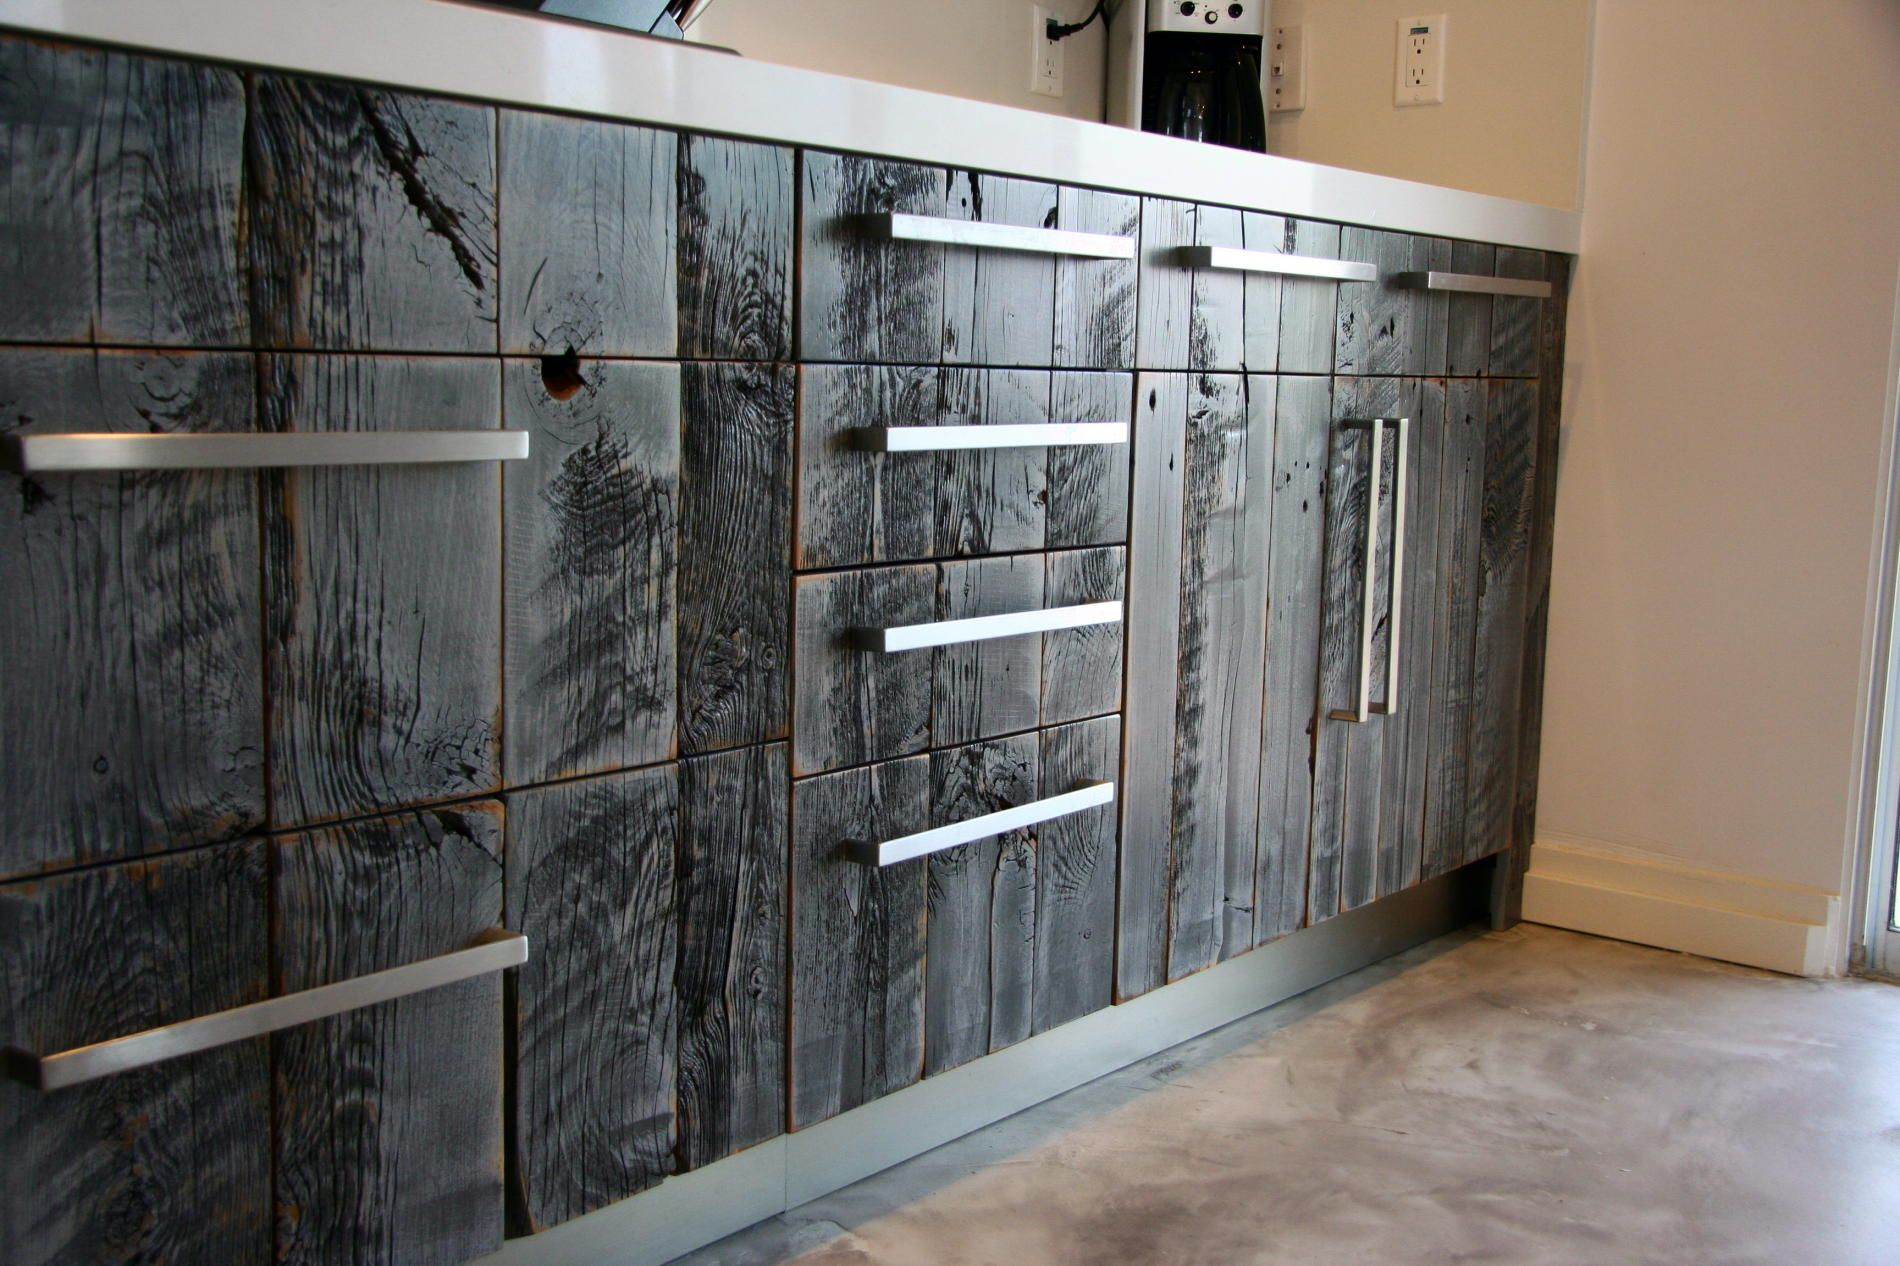 ikea cabinets kitchen Kitchen Cabinets Black Old Sytle Of Vintage Cabinetry With Drawers And Lockers Storages Also Grey Granite Countertop Also Grey Marble Flooring Tile Also